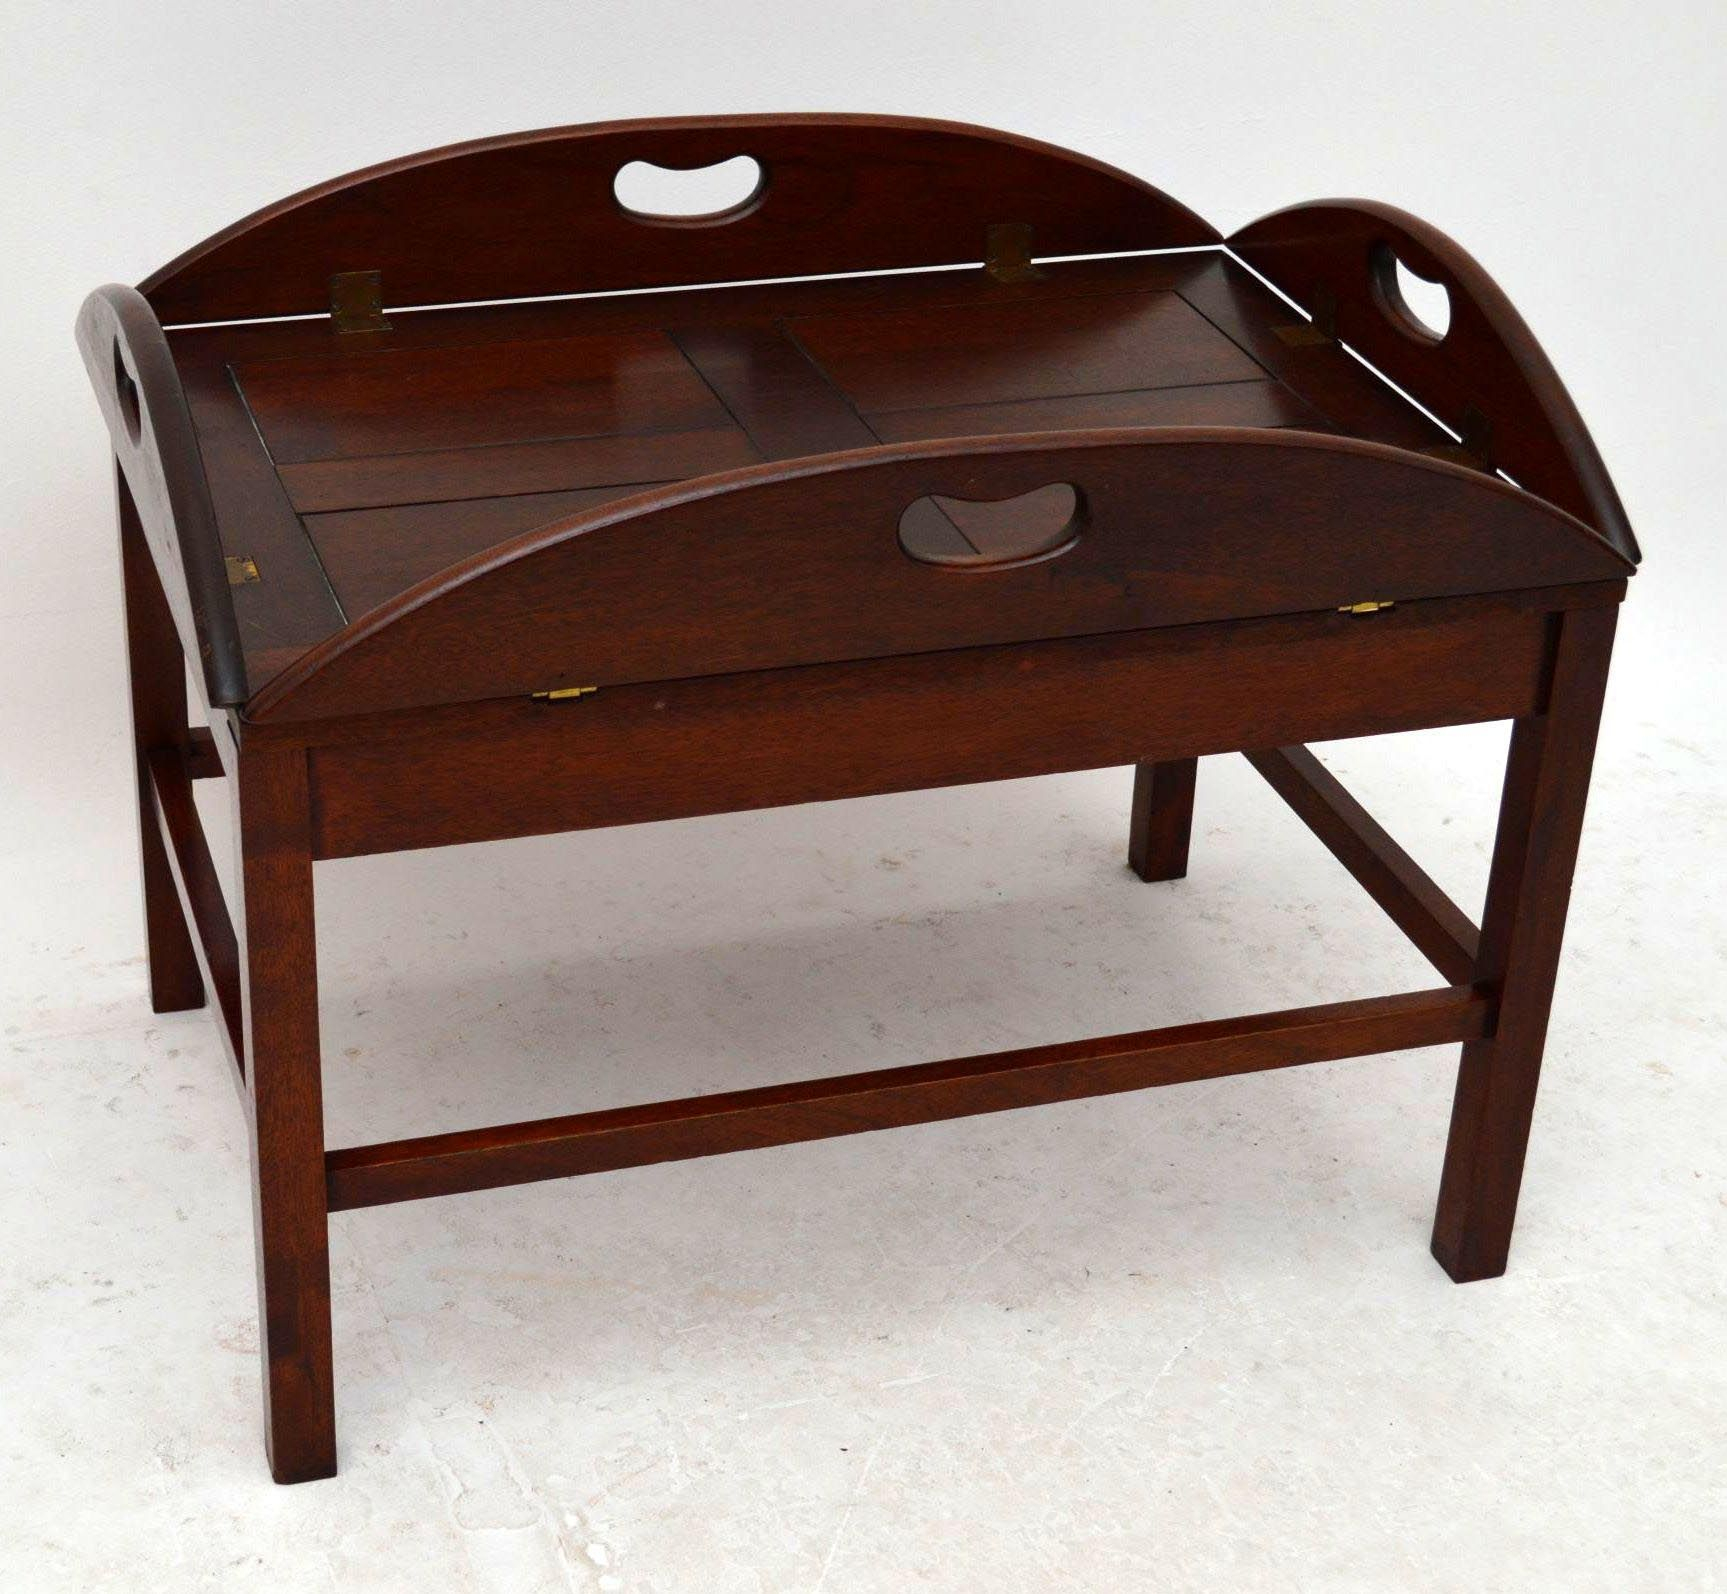 Mahogany Butler Tray Coffee Table Coffee Tables Mahogany Coffee pertaining to sizing 1727 X 1594